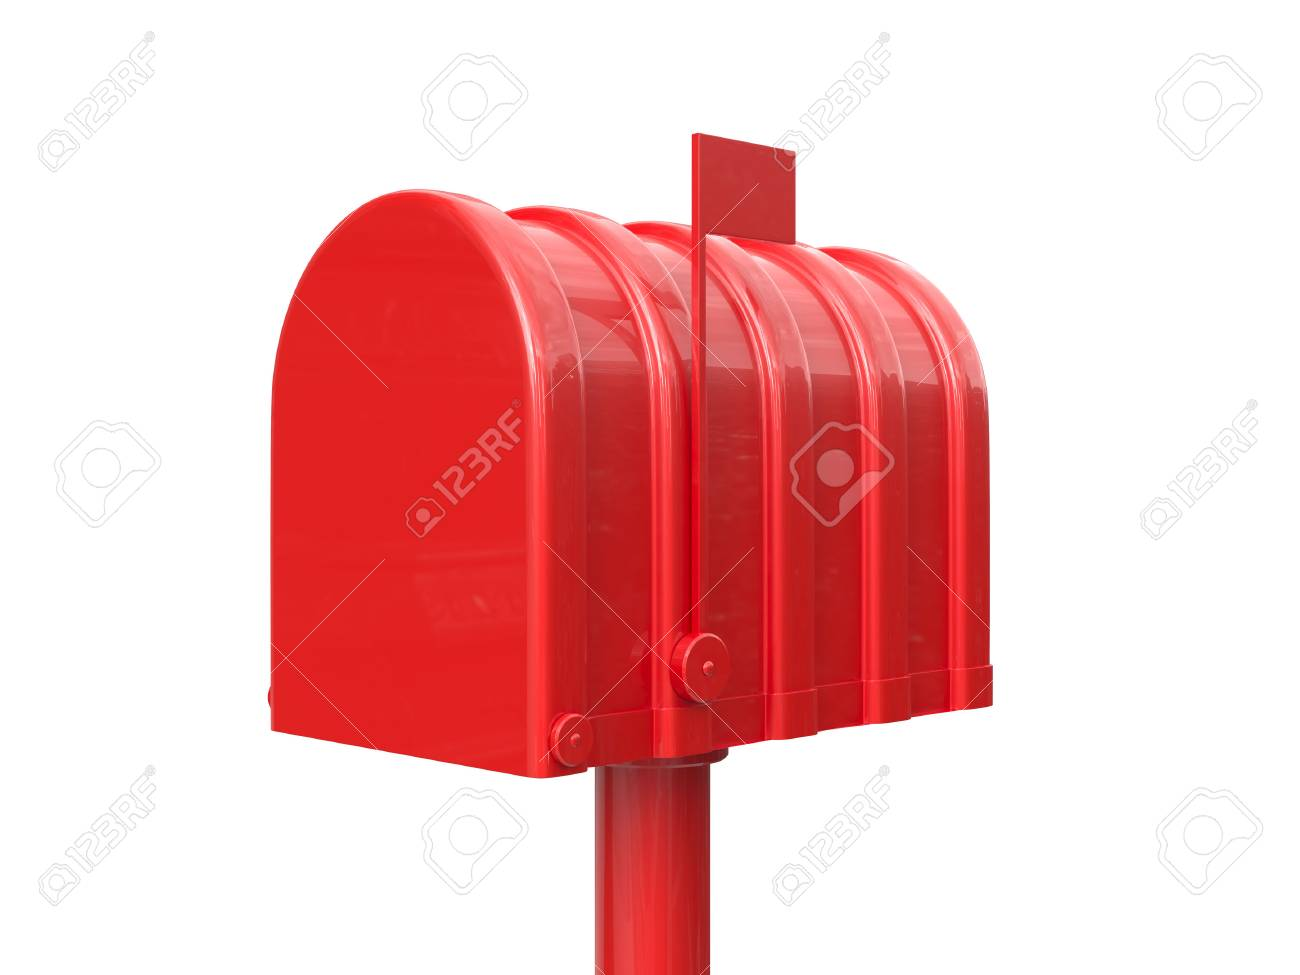 3d Illustration Of Closed Red Mailbox Isolated On White Background